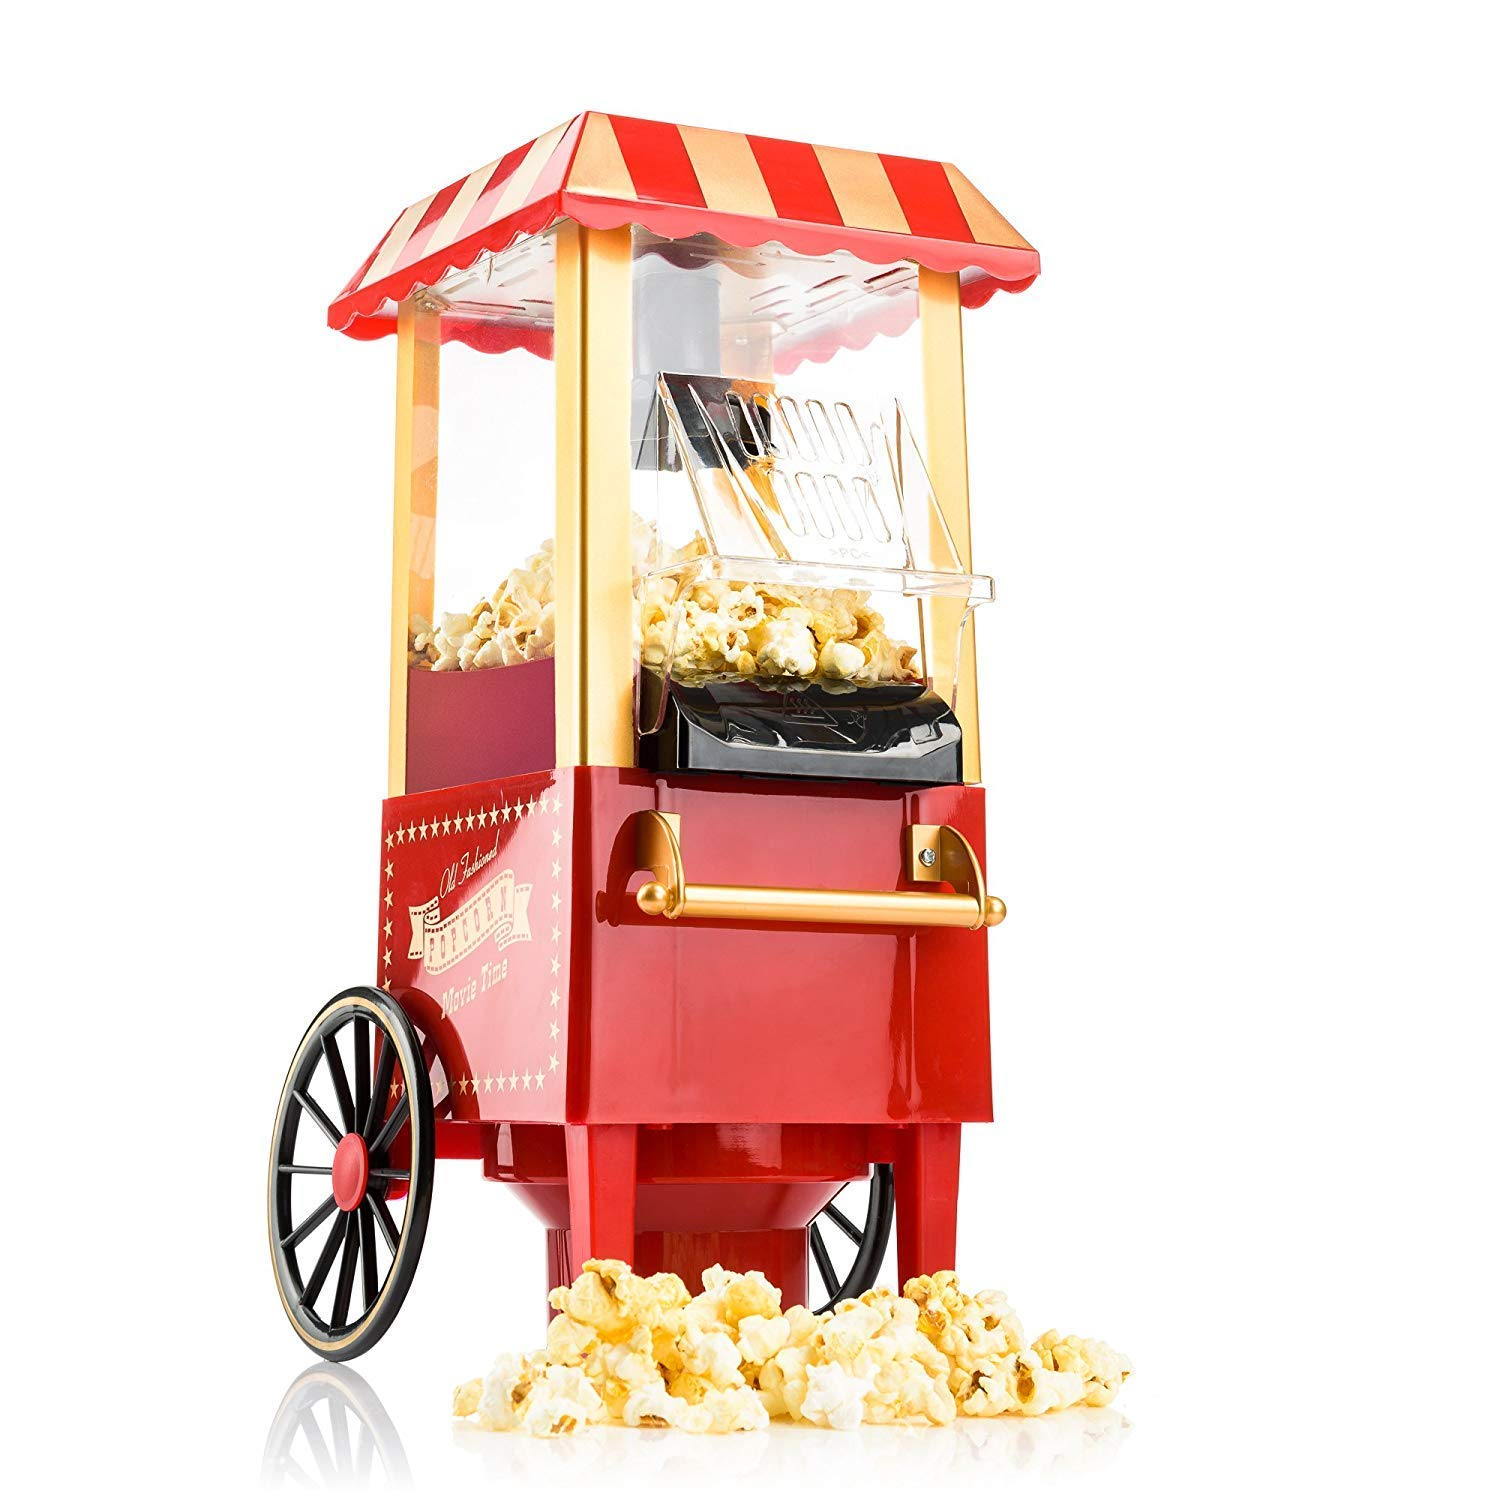 macchina pop corn professionale